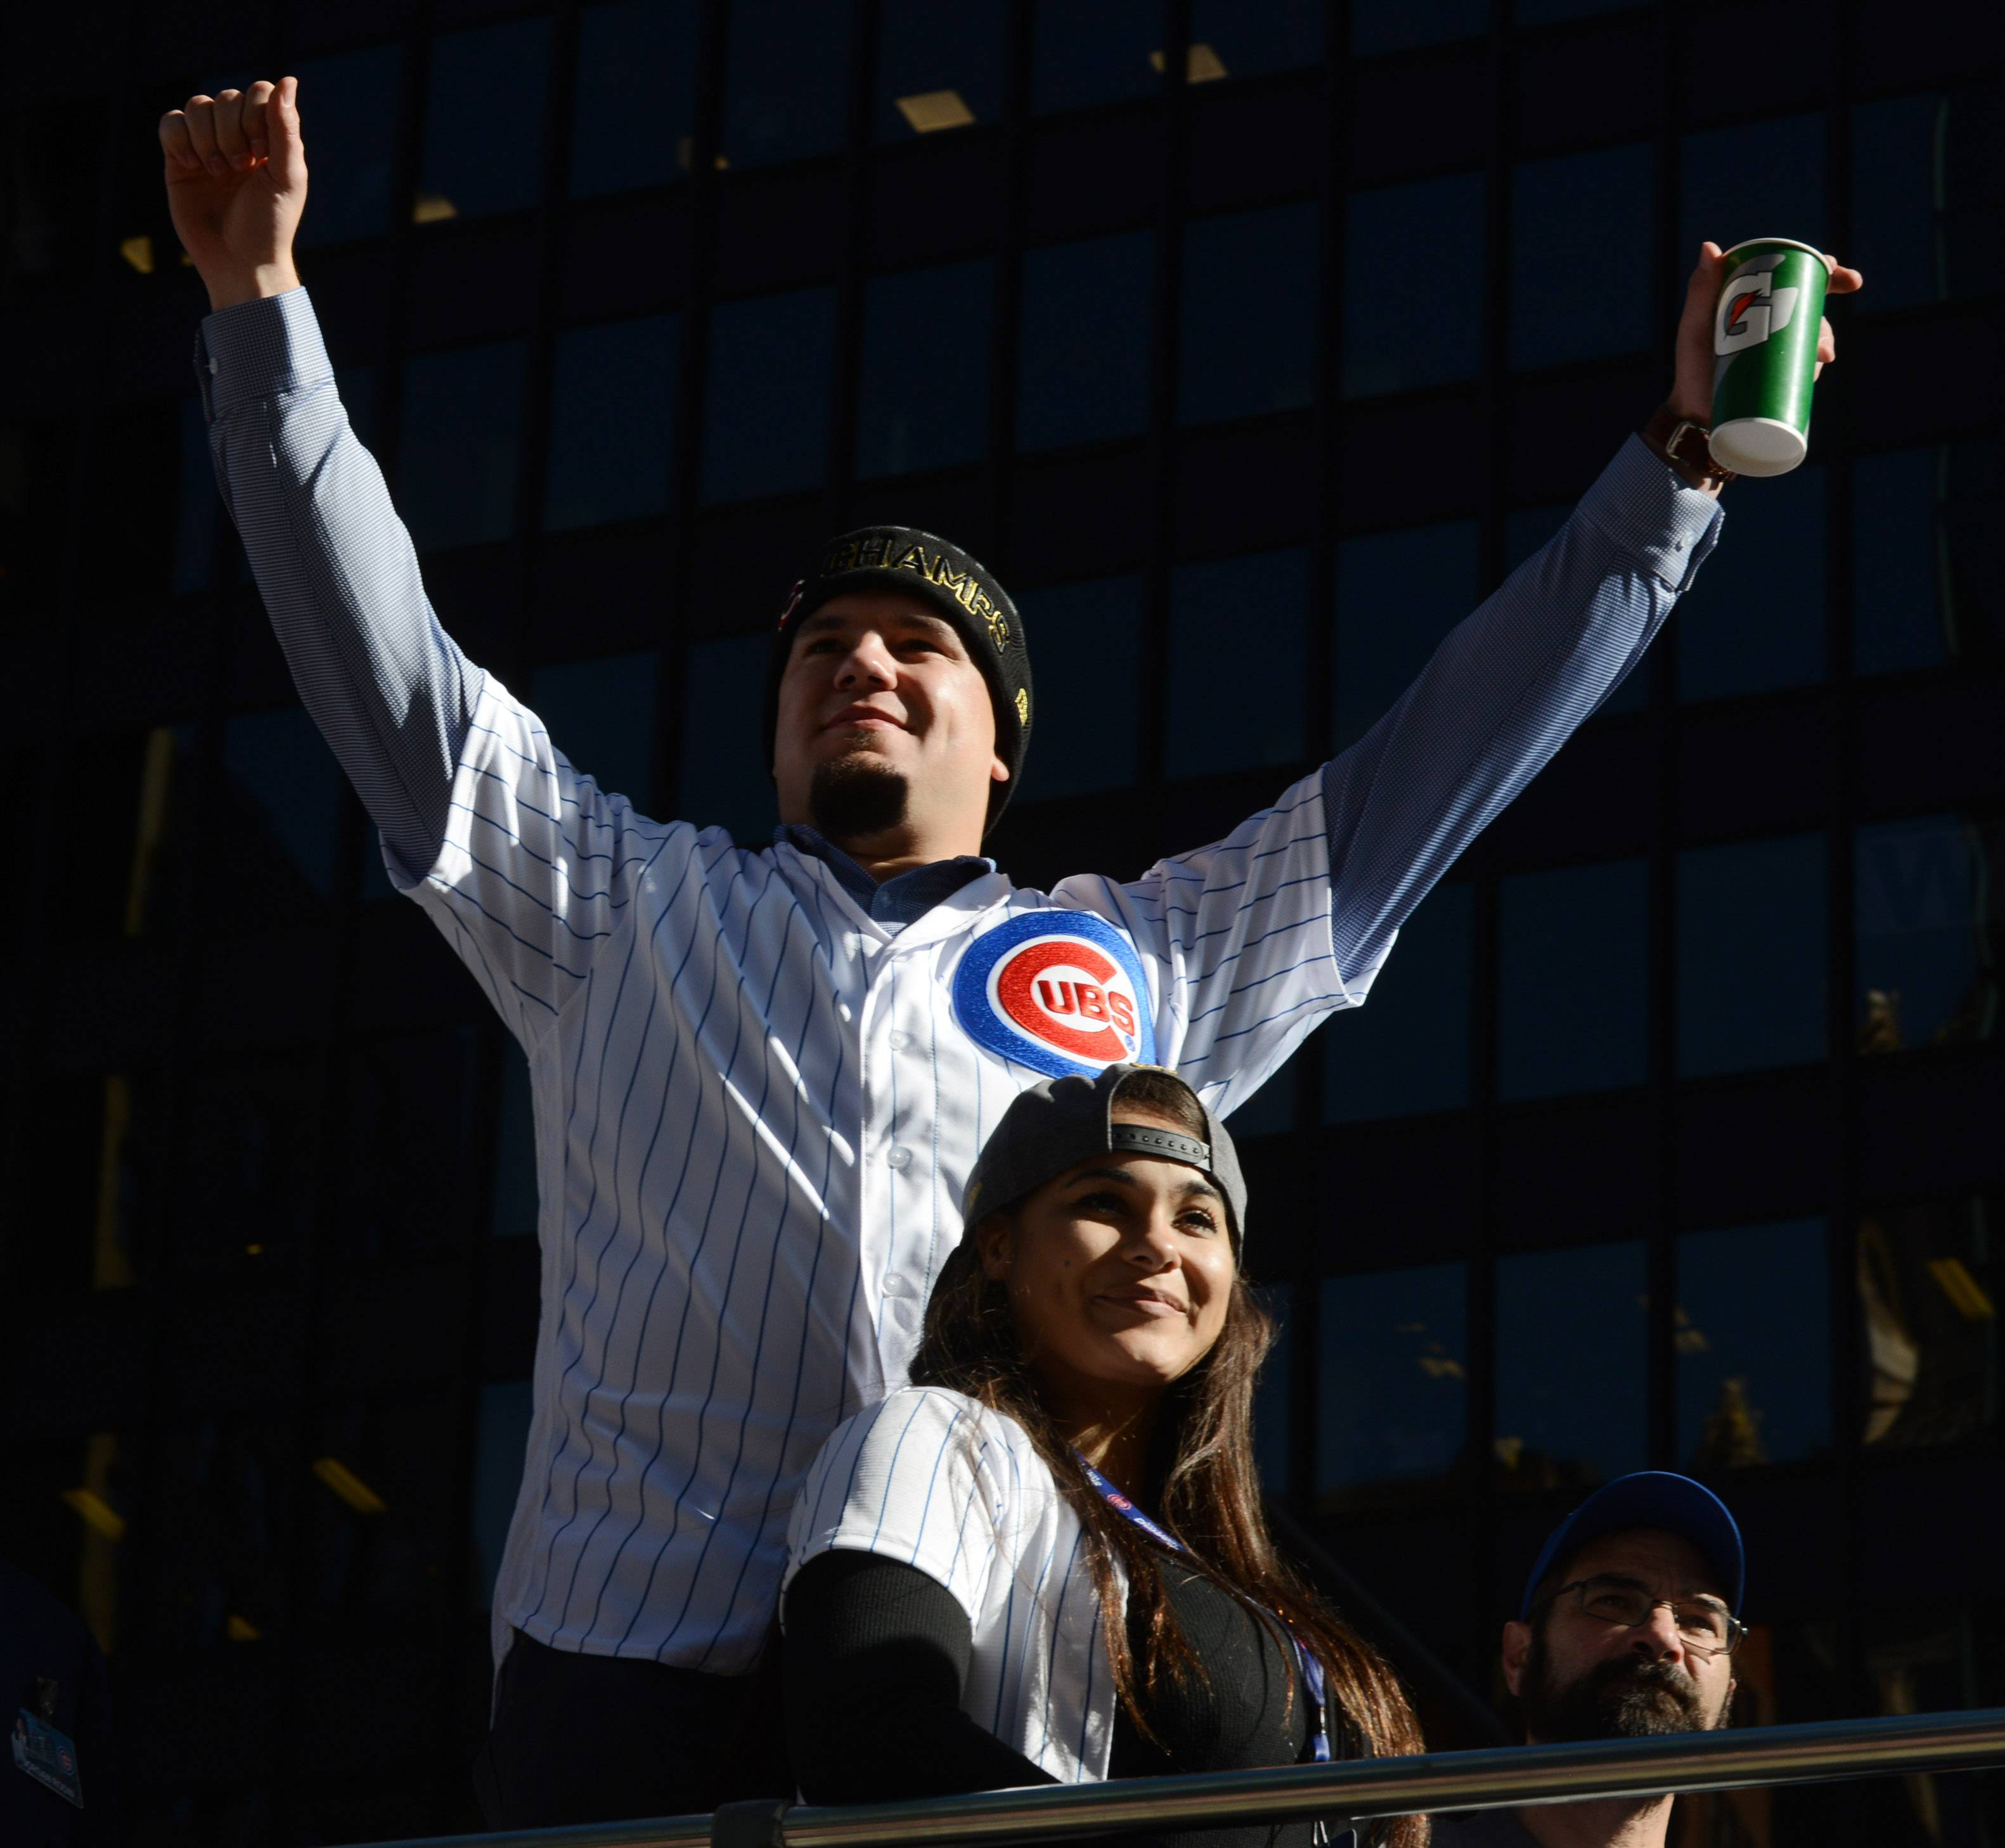 Kyle Schwarber waves to Chicago Cubs fans during the parade for the World Series champions that traveled down Michigan Avenue.